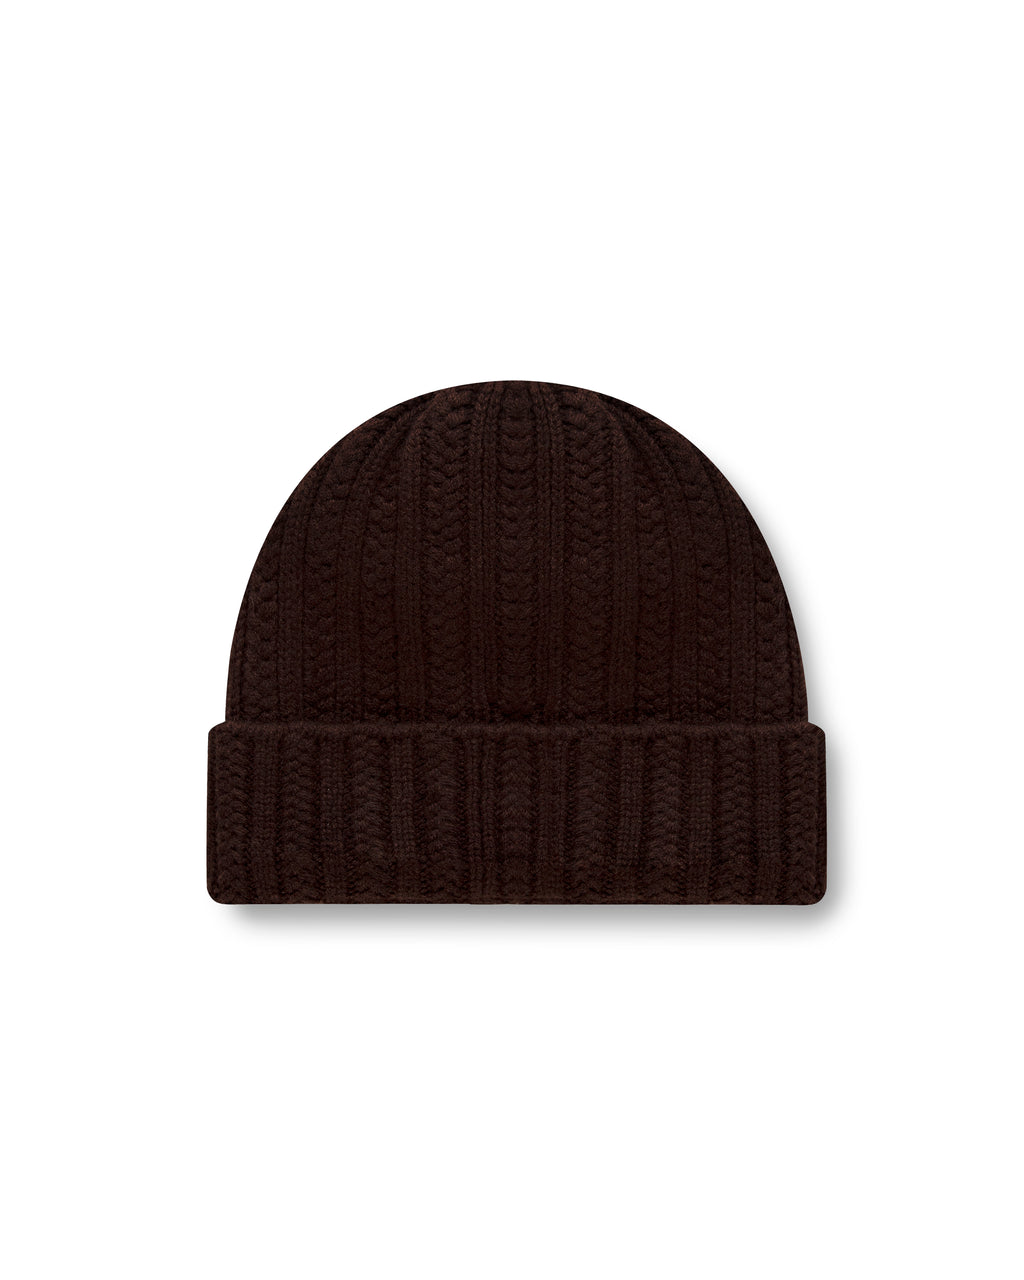 CHUNKY BEANIE Truffle Brown - Santosh clothing